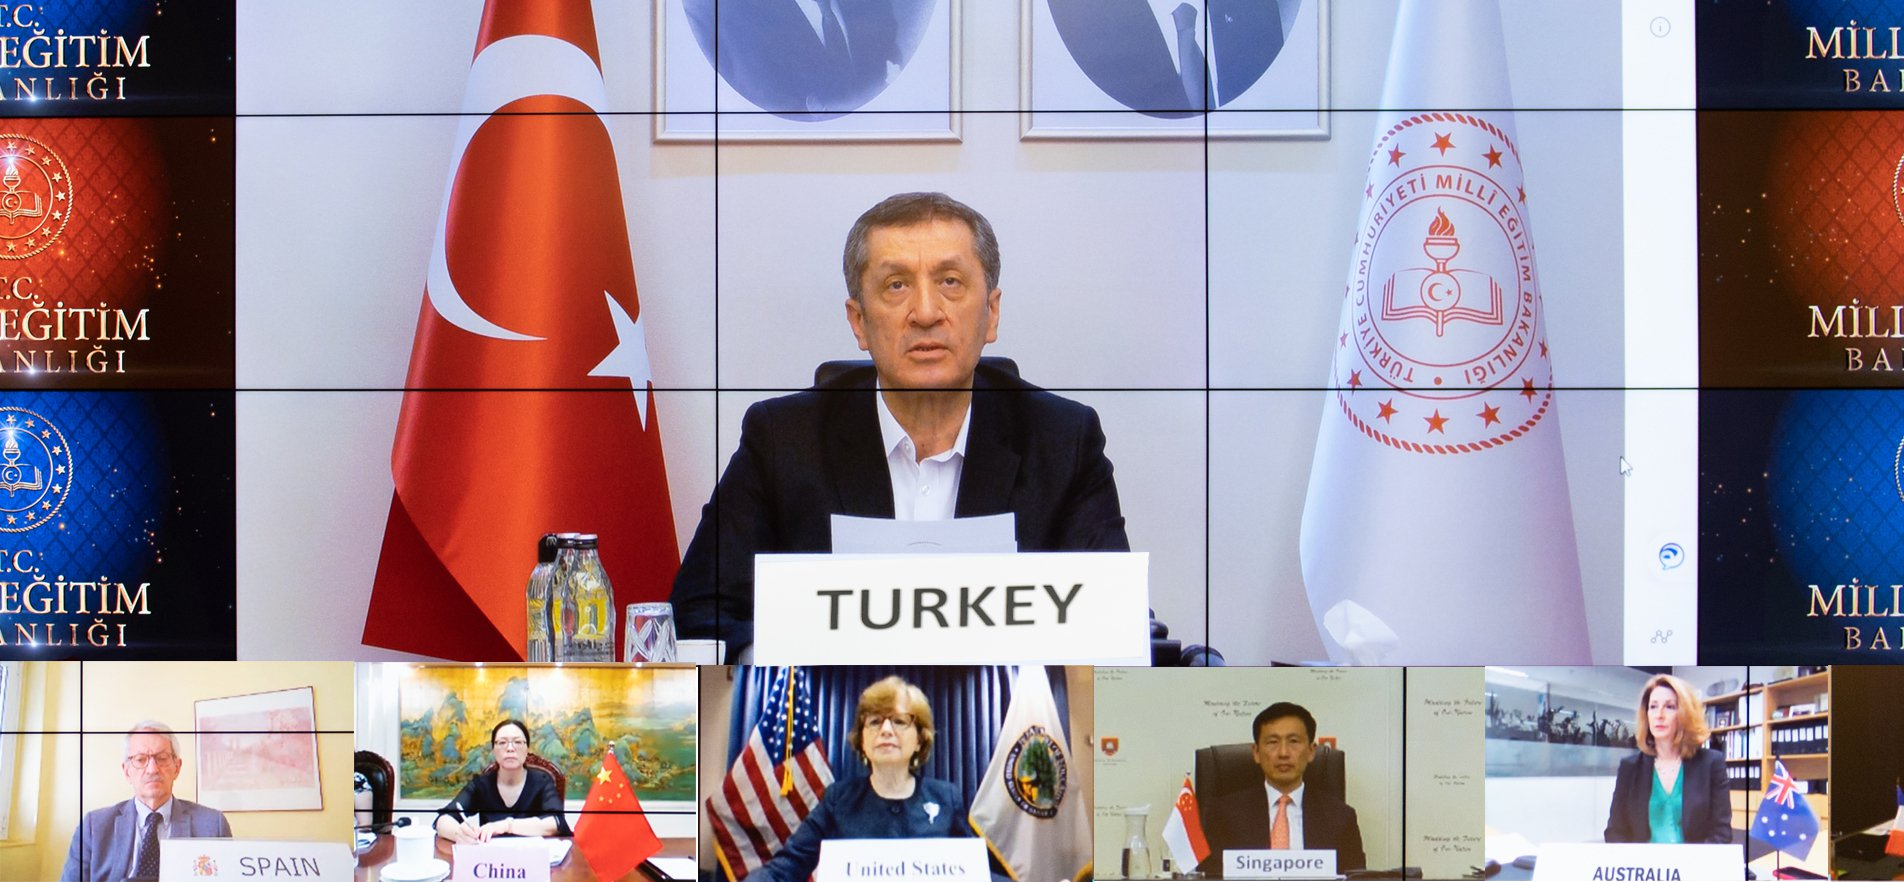 MINISTER SELÇUK TALKS ABOUT TURKEY'S COVID-19 EXPERIENCE TO G20 COUNTRIES